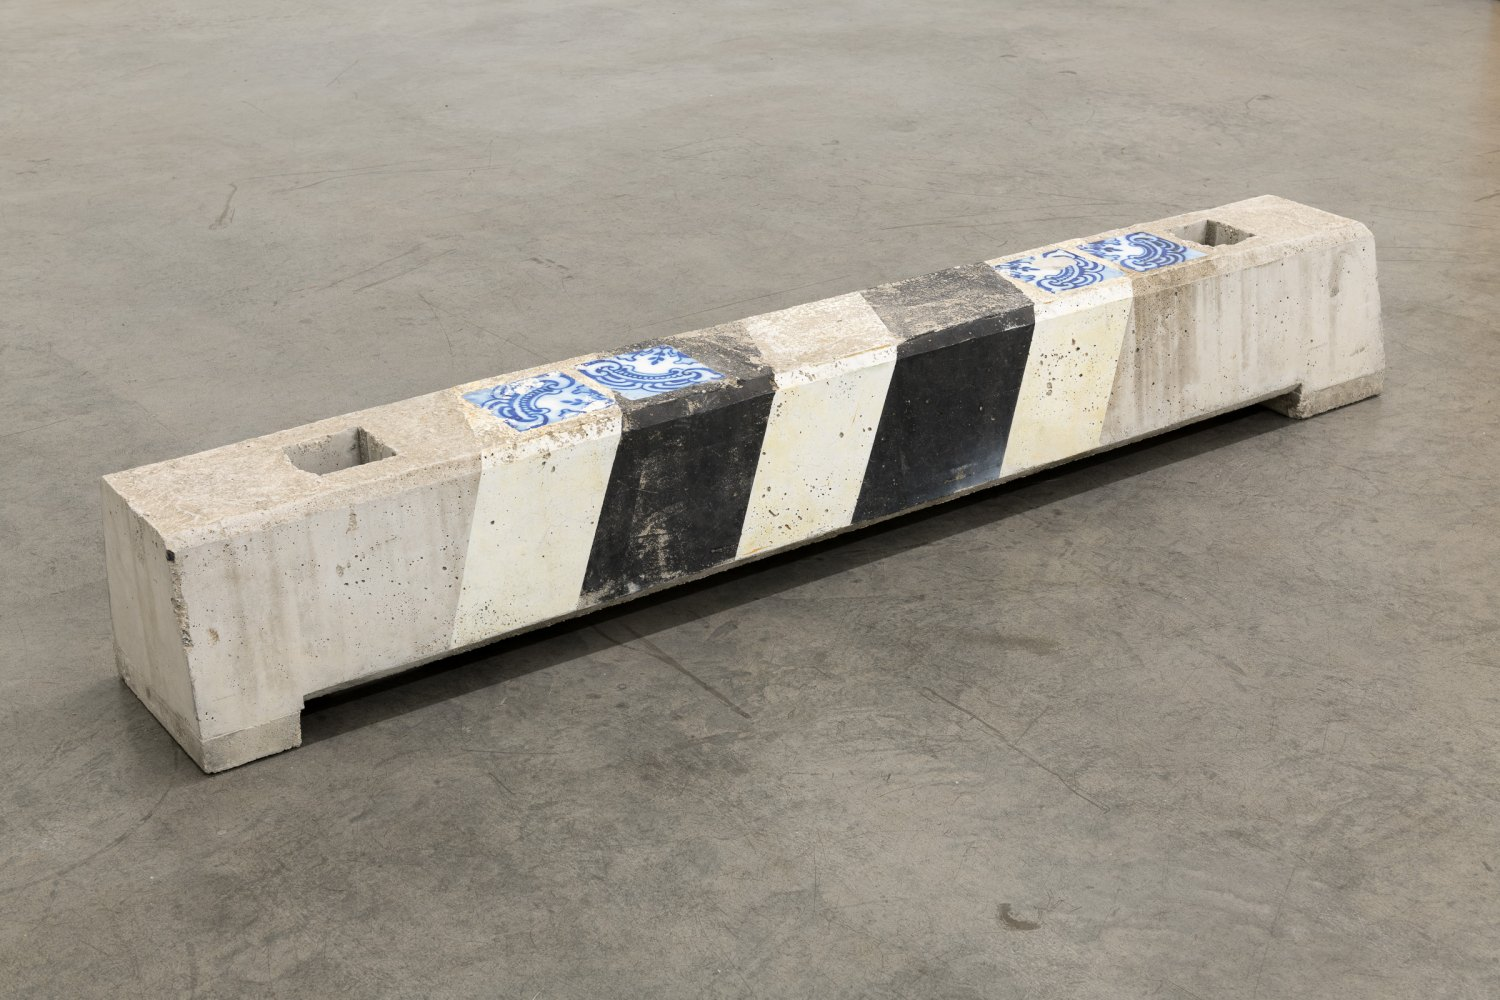 Manfred Pernice barriere 'Tiefengarage', 2008 Concrete, paint 199 x 30 x 29 cm